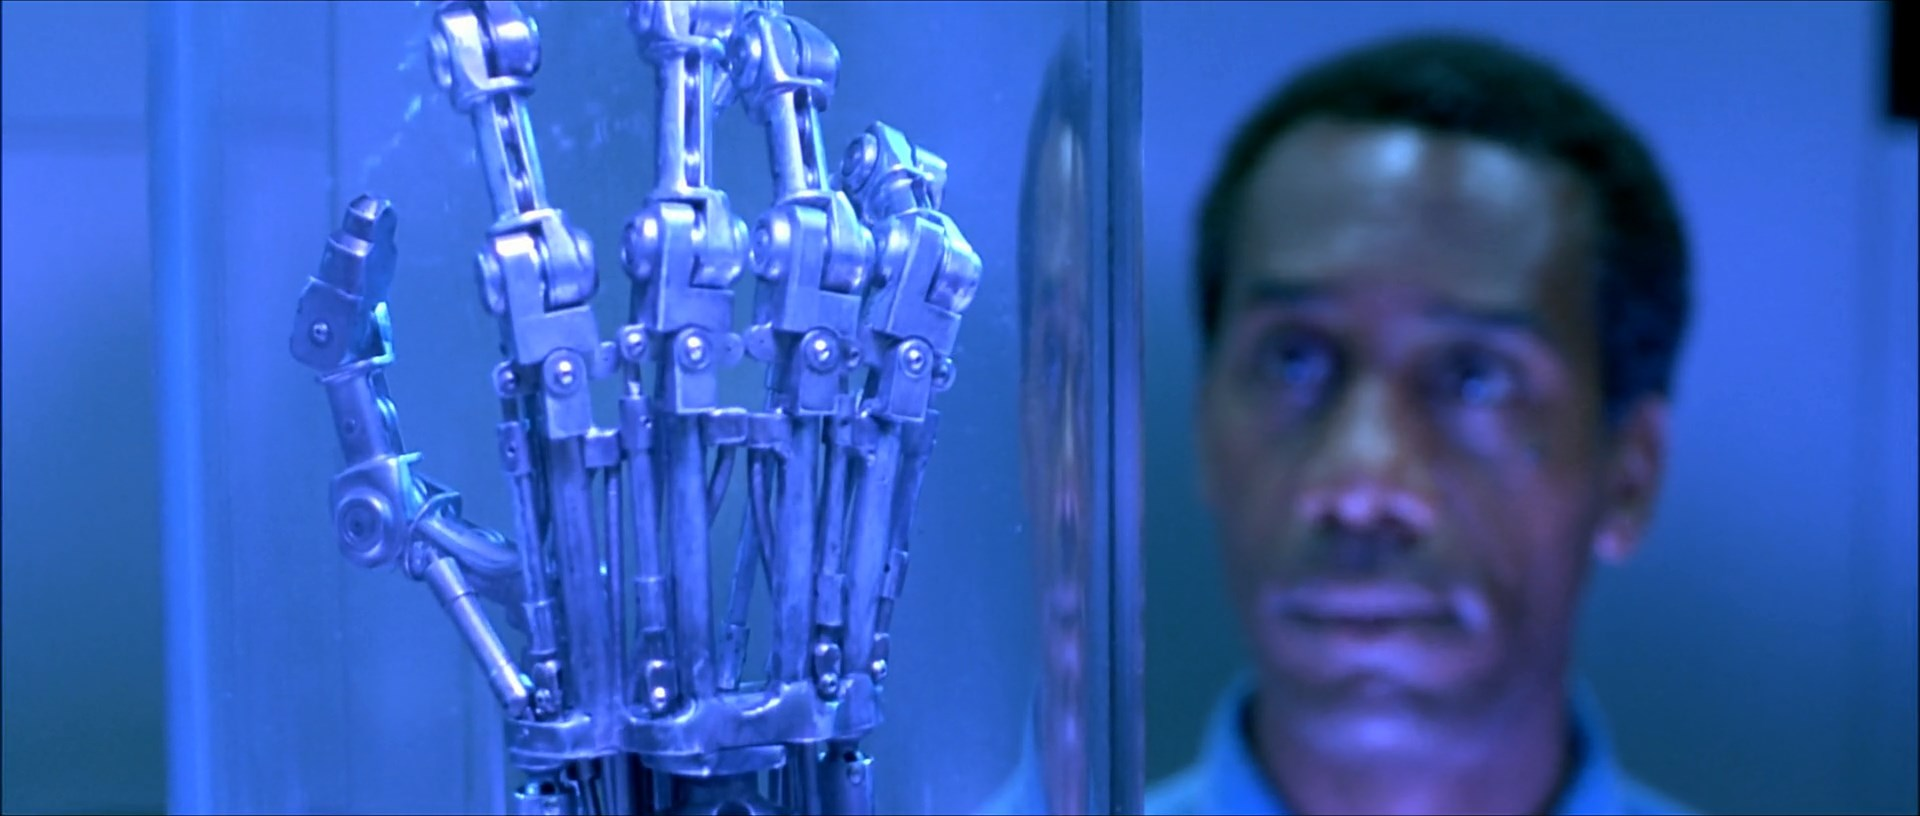 File:Terminator 2 Endoskeleton Arm.jpg